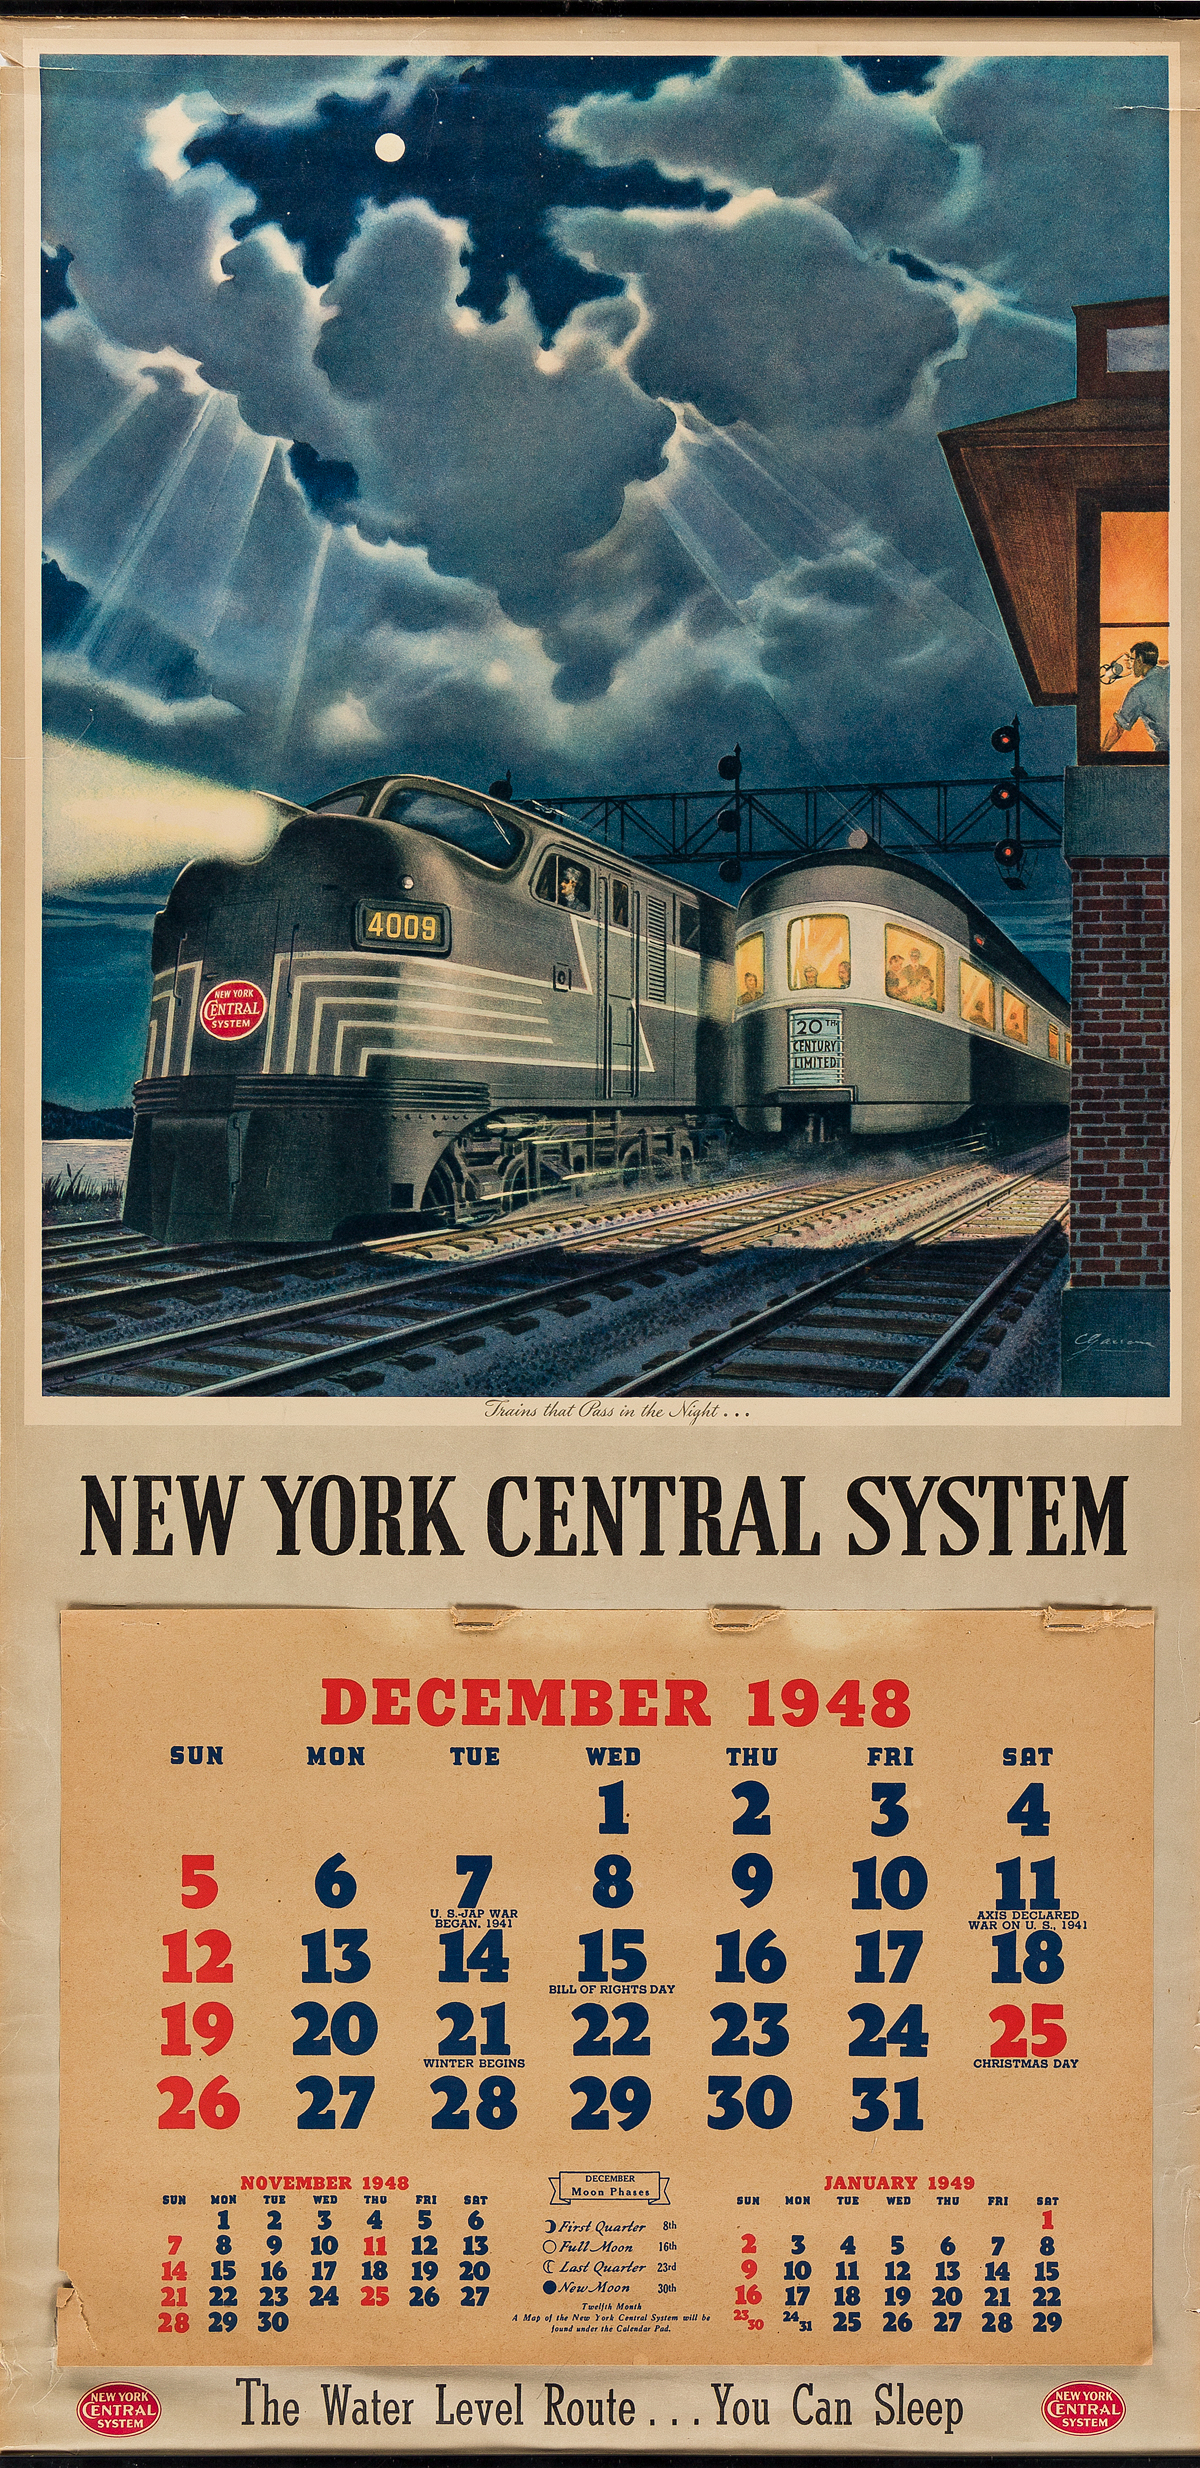 VARIOUS-ARTISTS-NEW-YORK-CENTRAL-SYSTEM-Two-calendars-1948--1949-Each-32x16-inches-83x40-cm